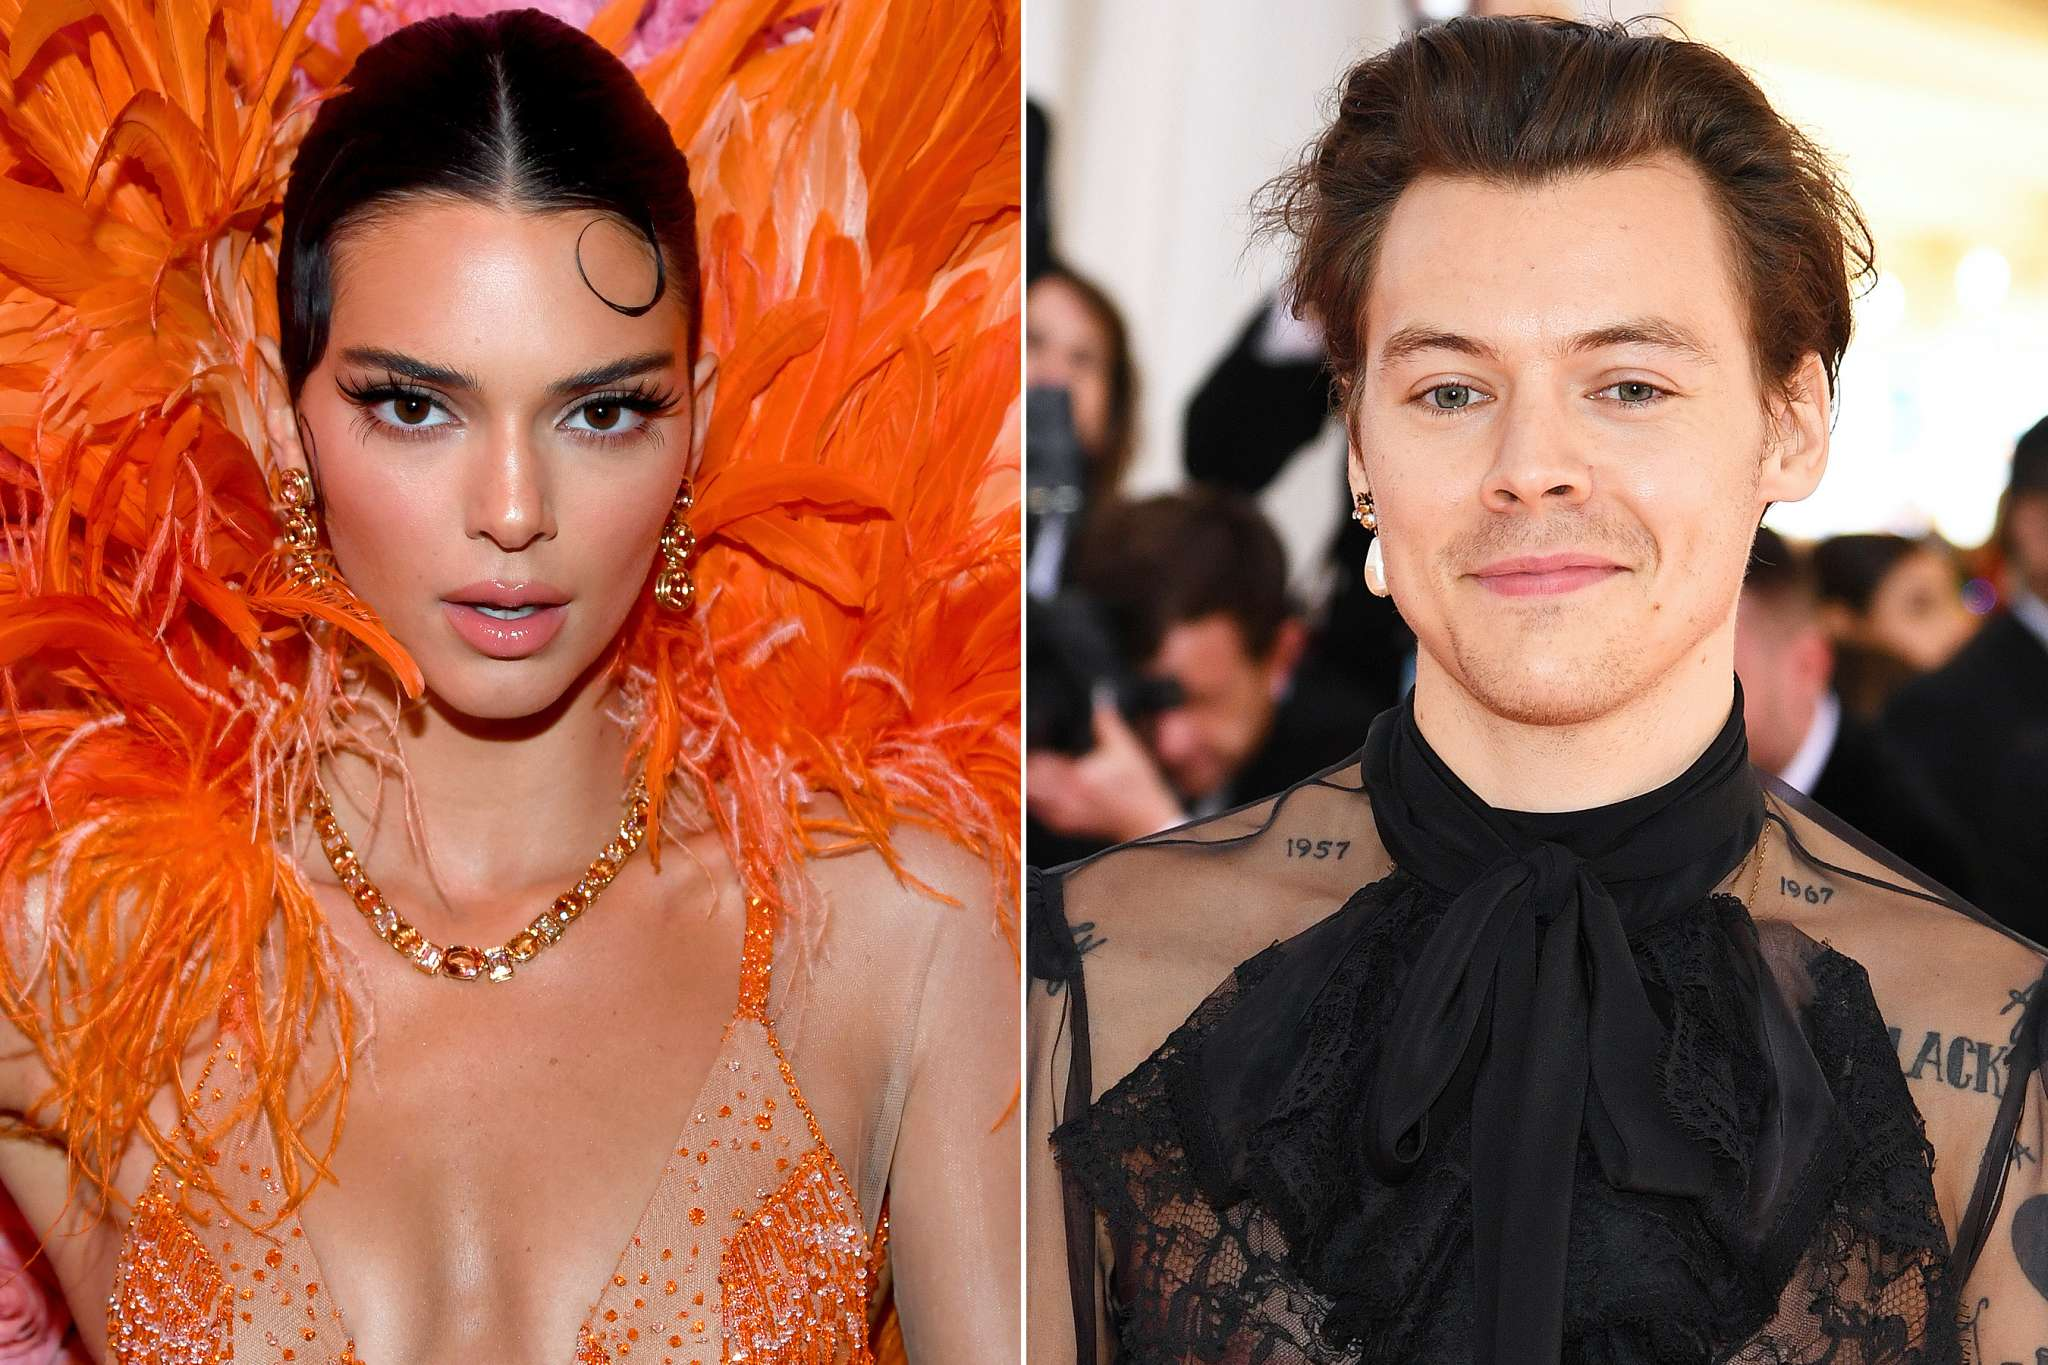 ben-simmons-is-reportedly-worried-and-confused-as-girlfriend-kendall-jenner-and-her-ex-harry-styles-reunite-at-the-met-gala